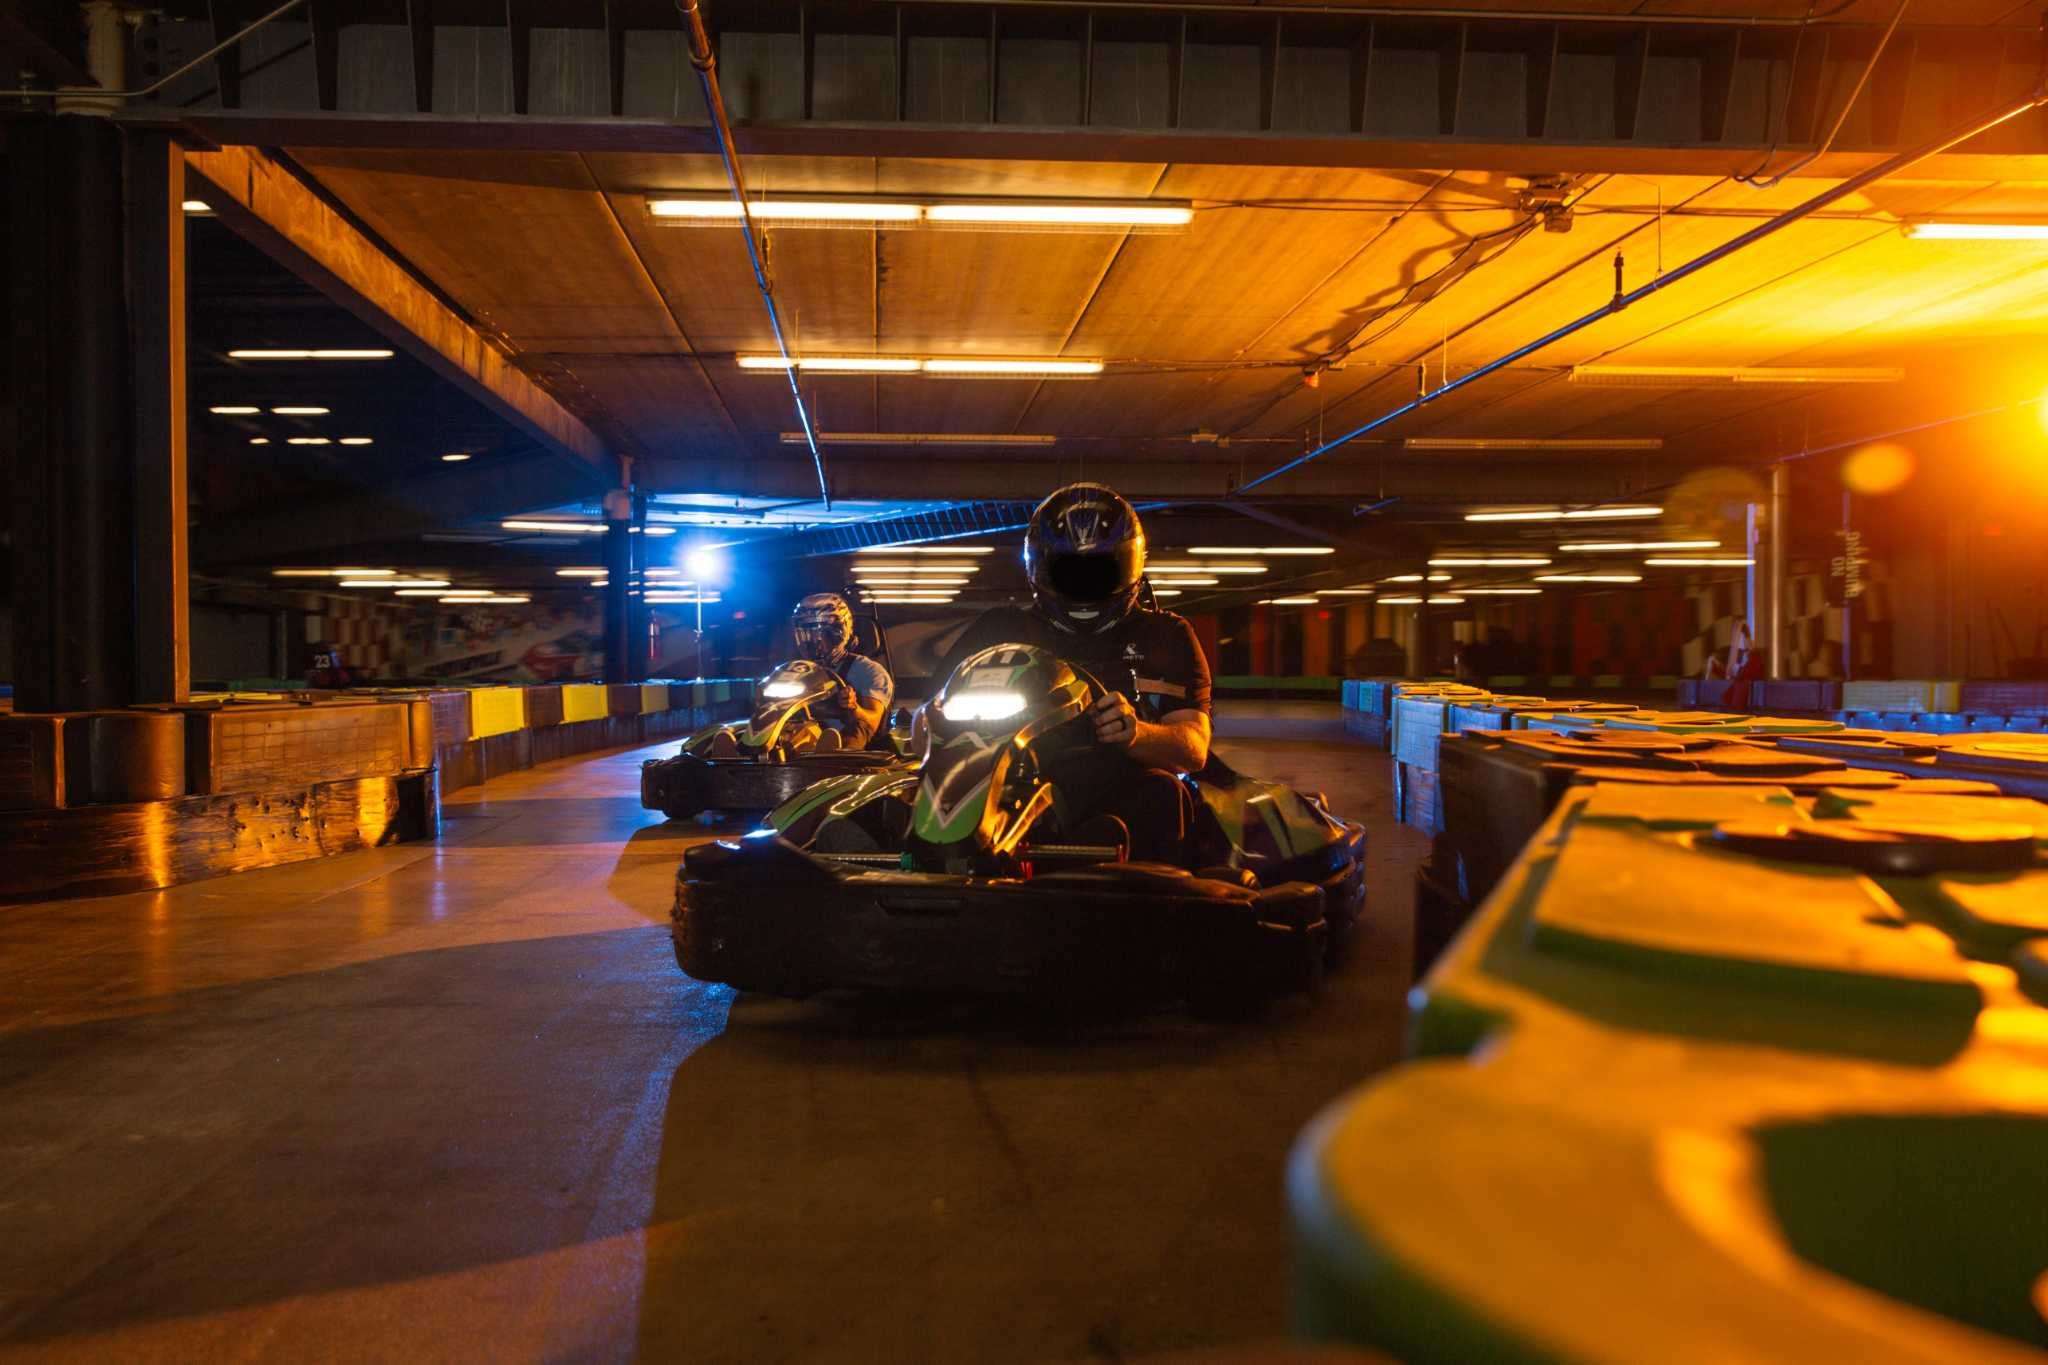 Indoor Go Kart Facility Bar Hiring More Than 300 Workers